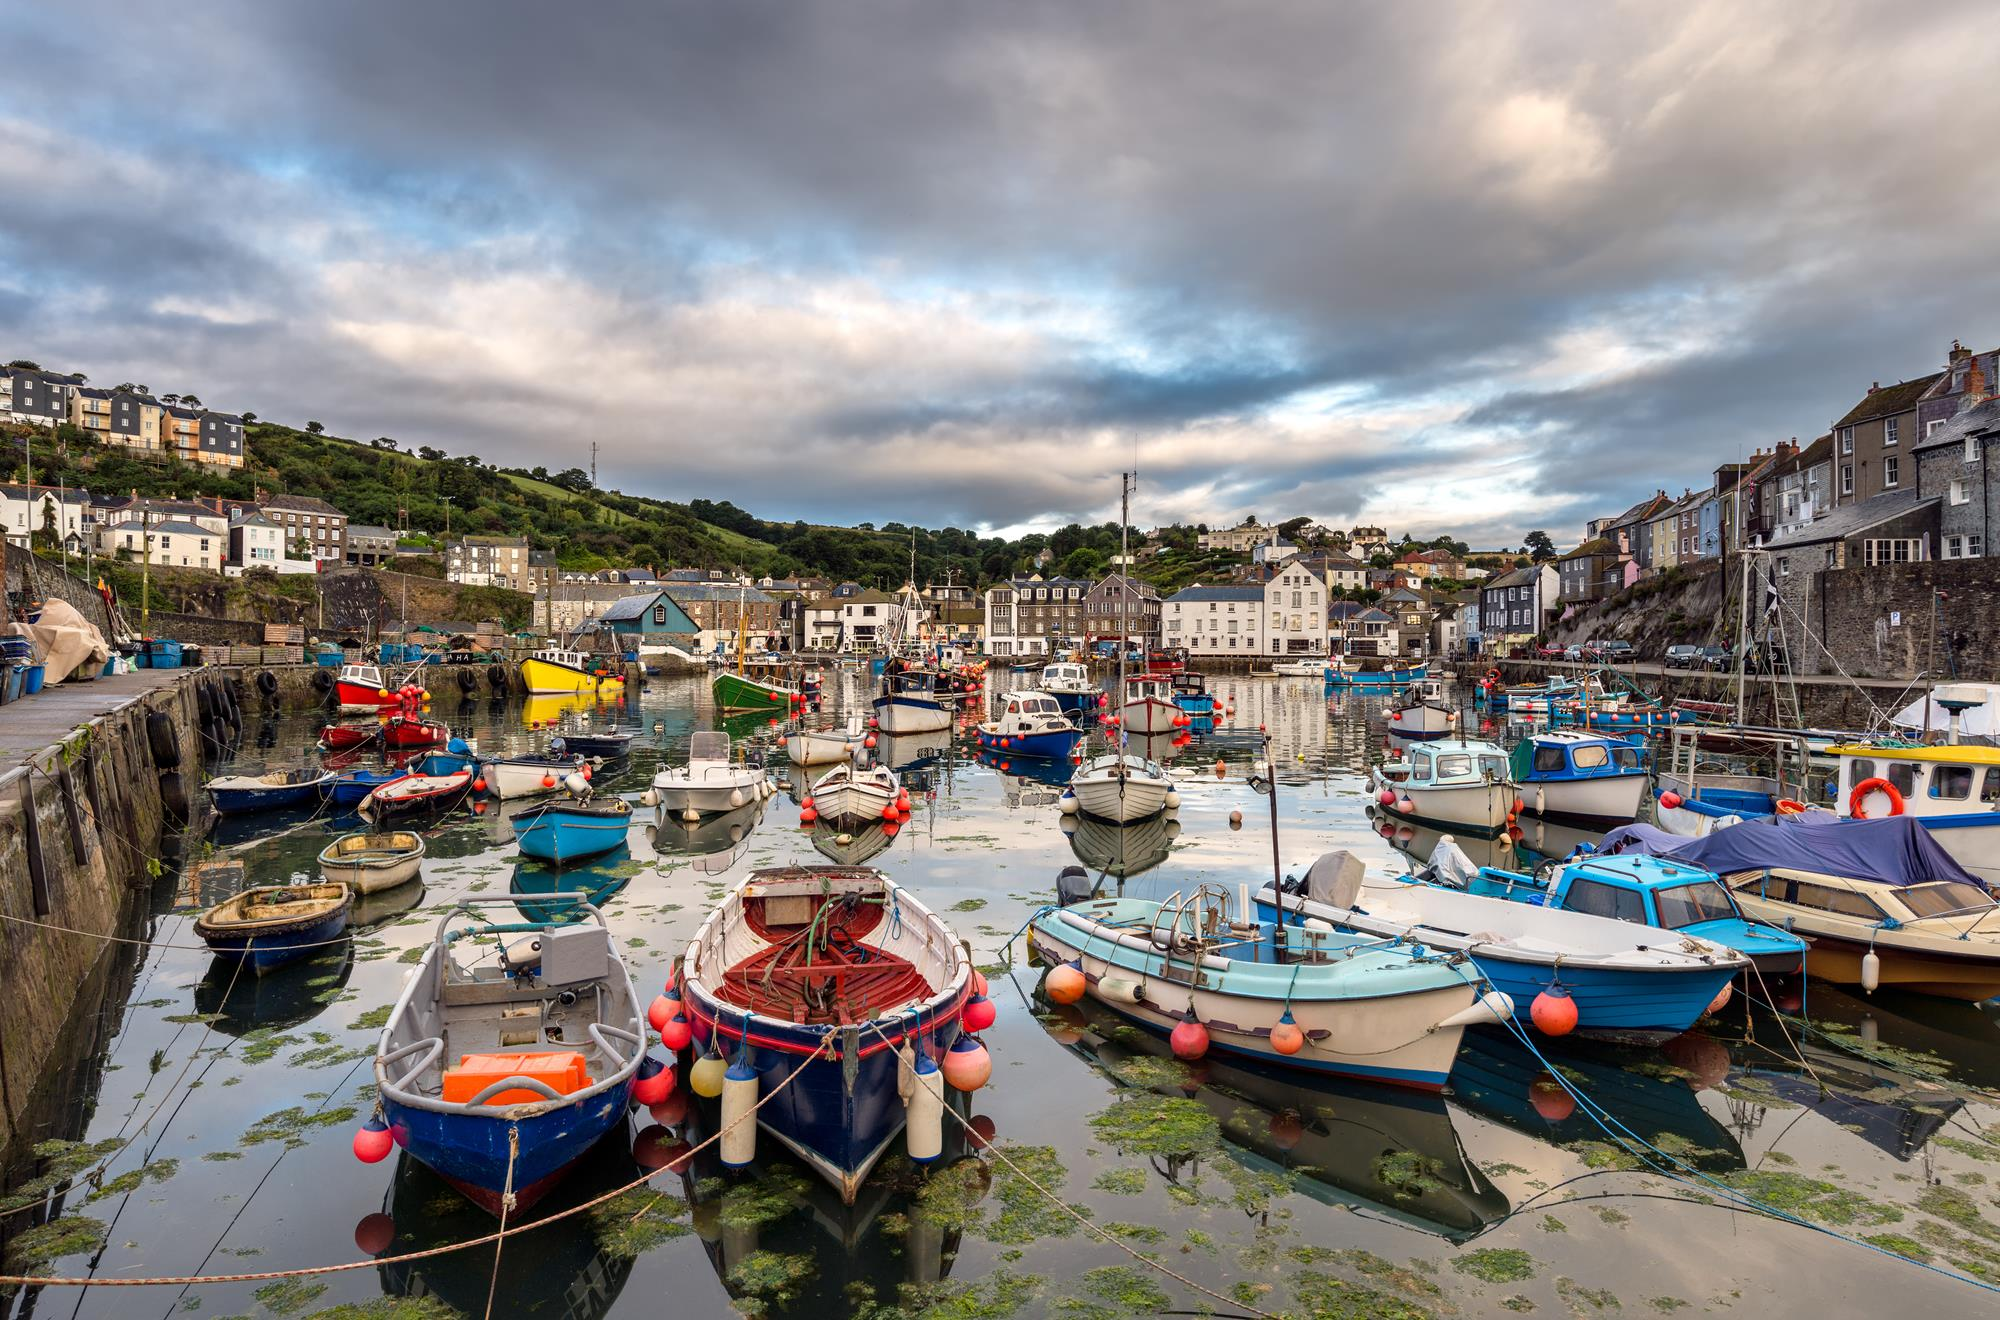 Boats in Mevagissey Harbour part of the coastal path in Cornwall